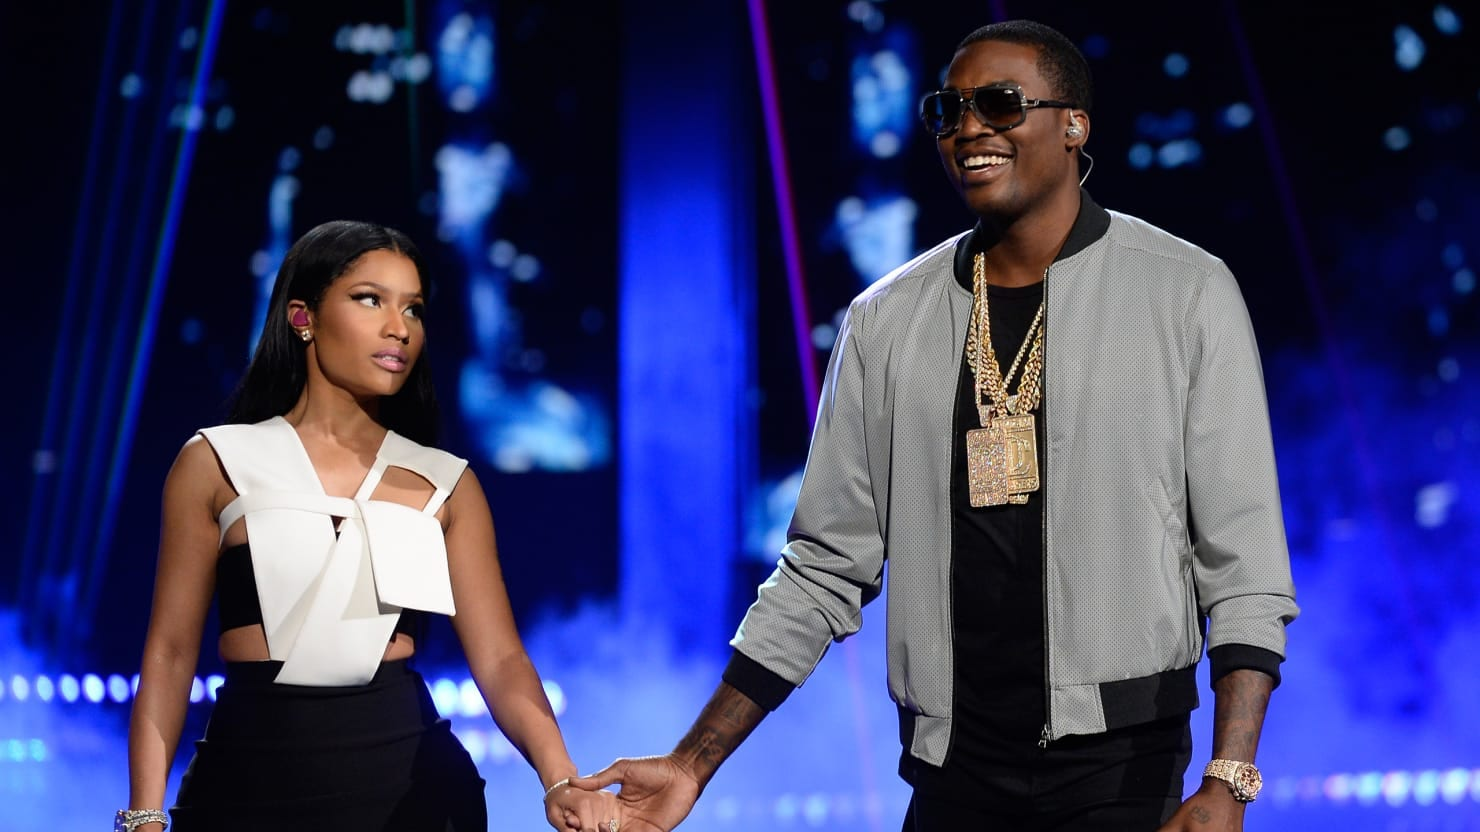 Meek Mill Says Nicki Minaj has him Blocked on Instagram